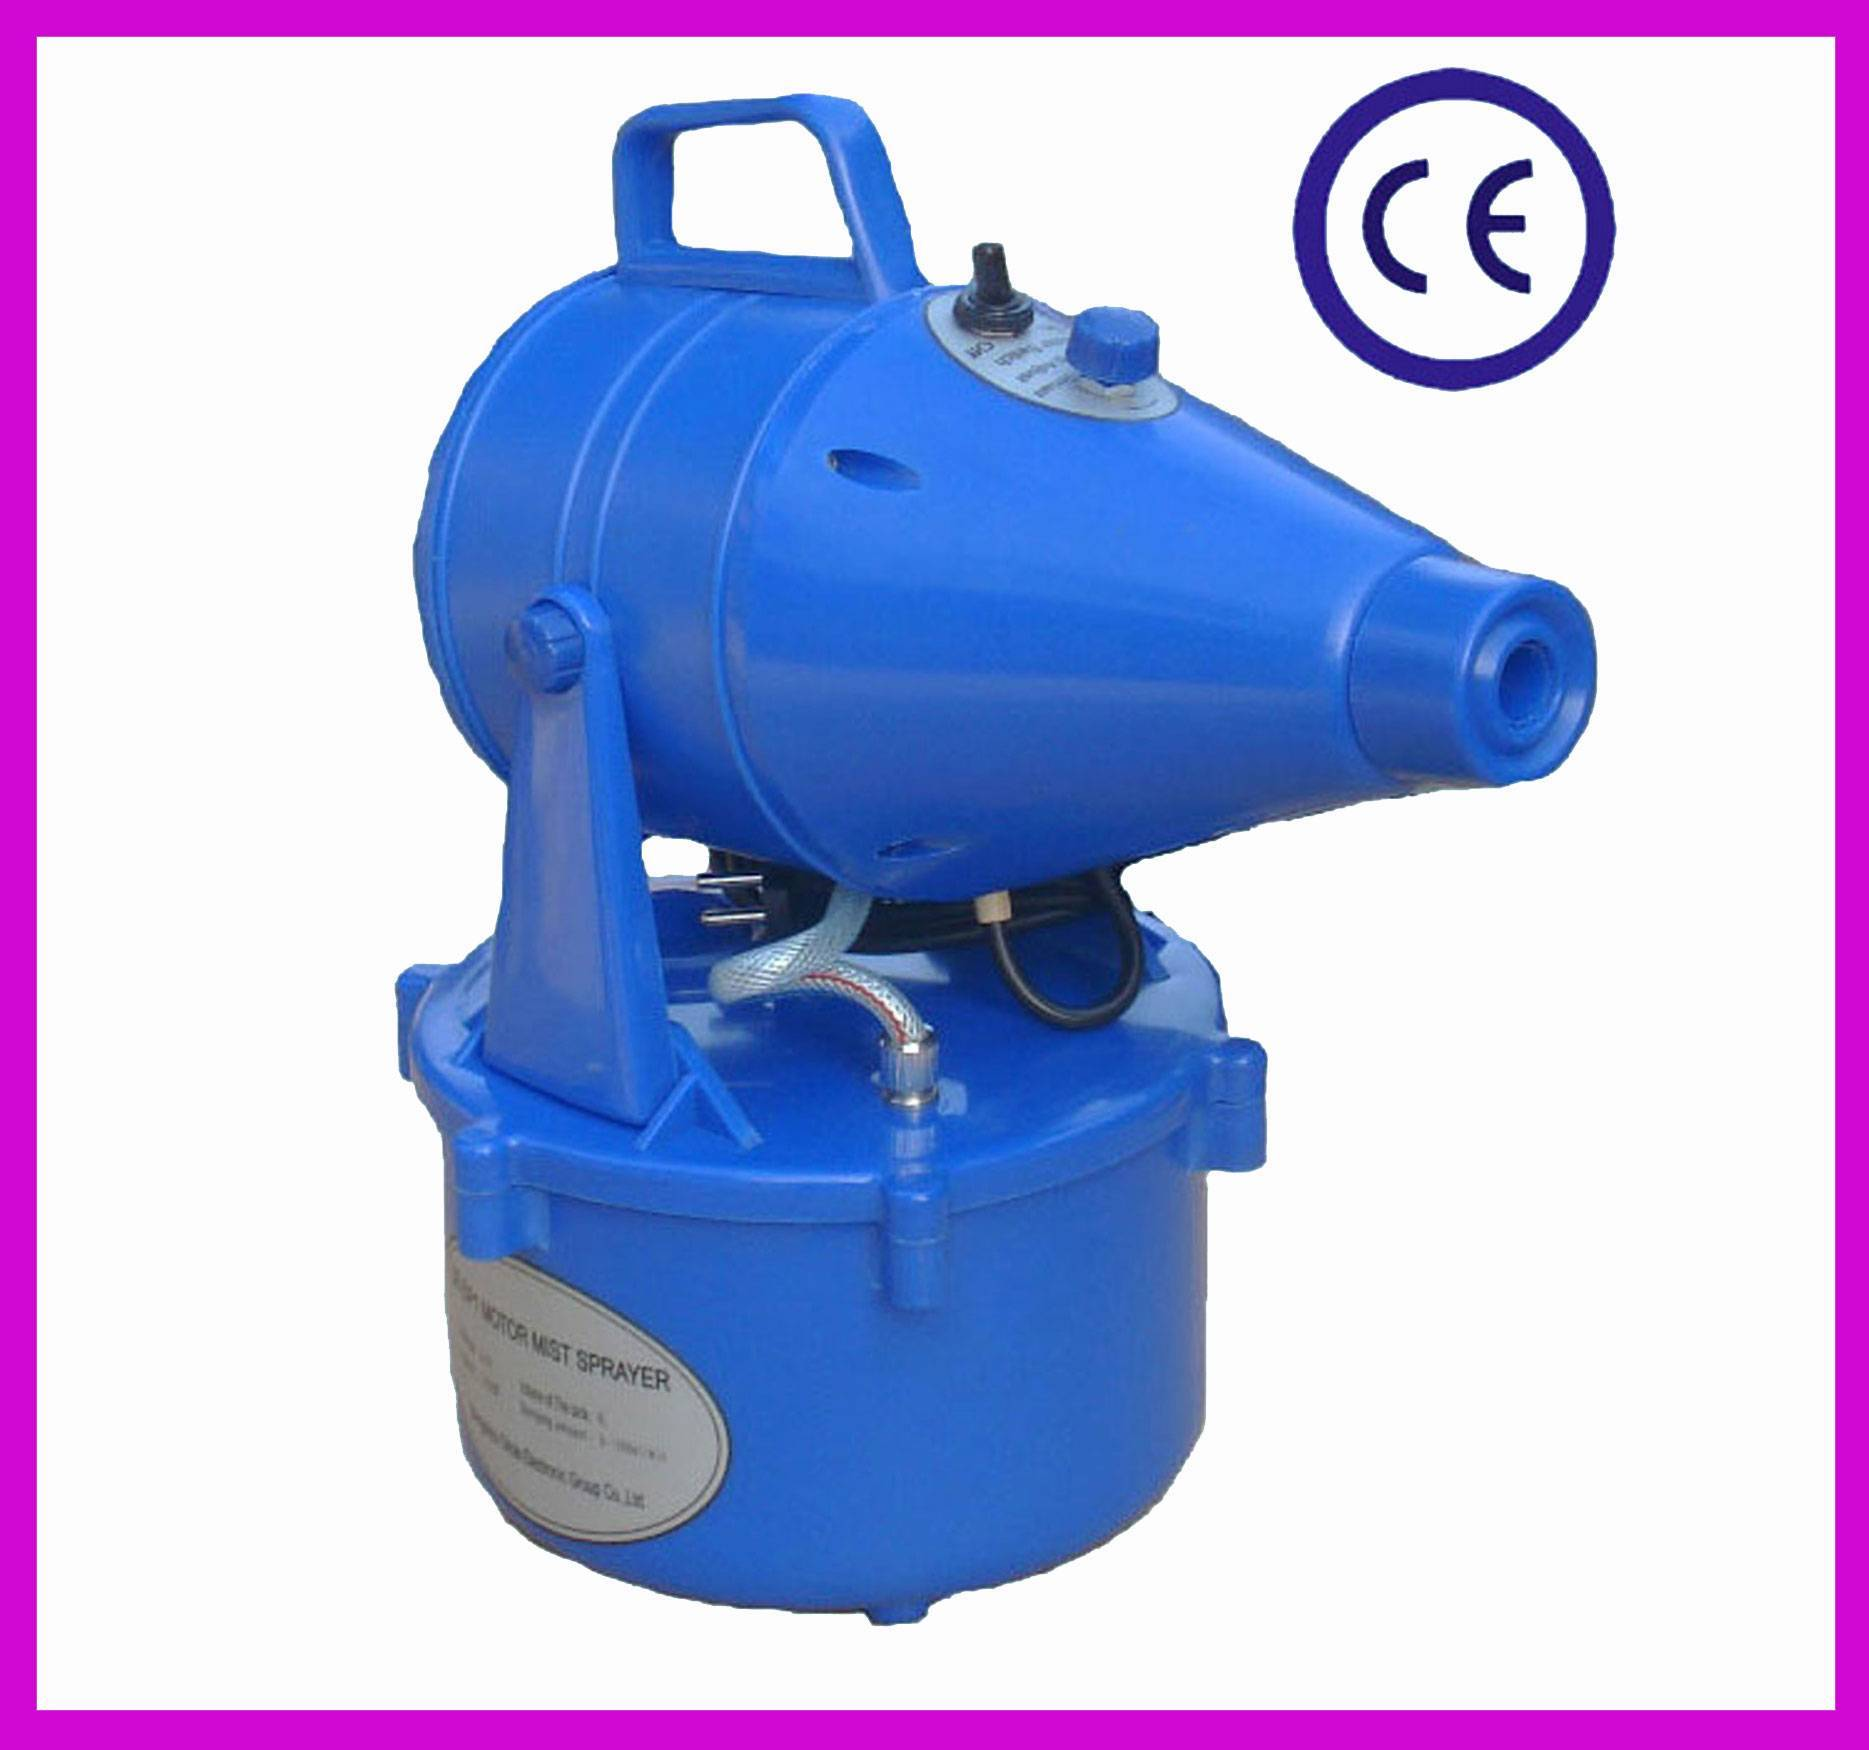 agro-sprayer OR-DP1 with pest controlm for garden tool